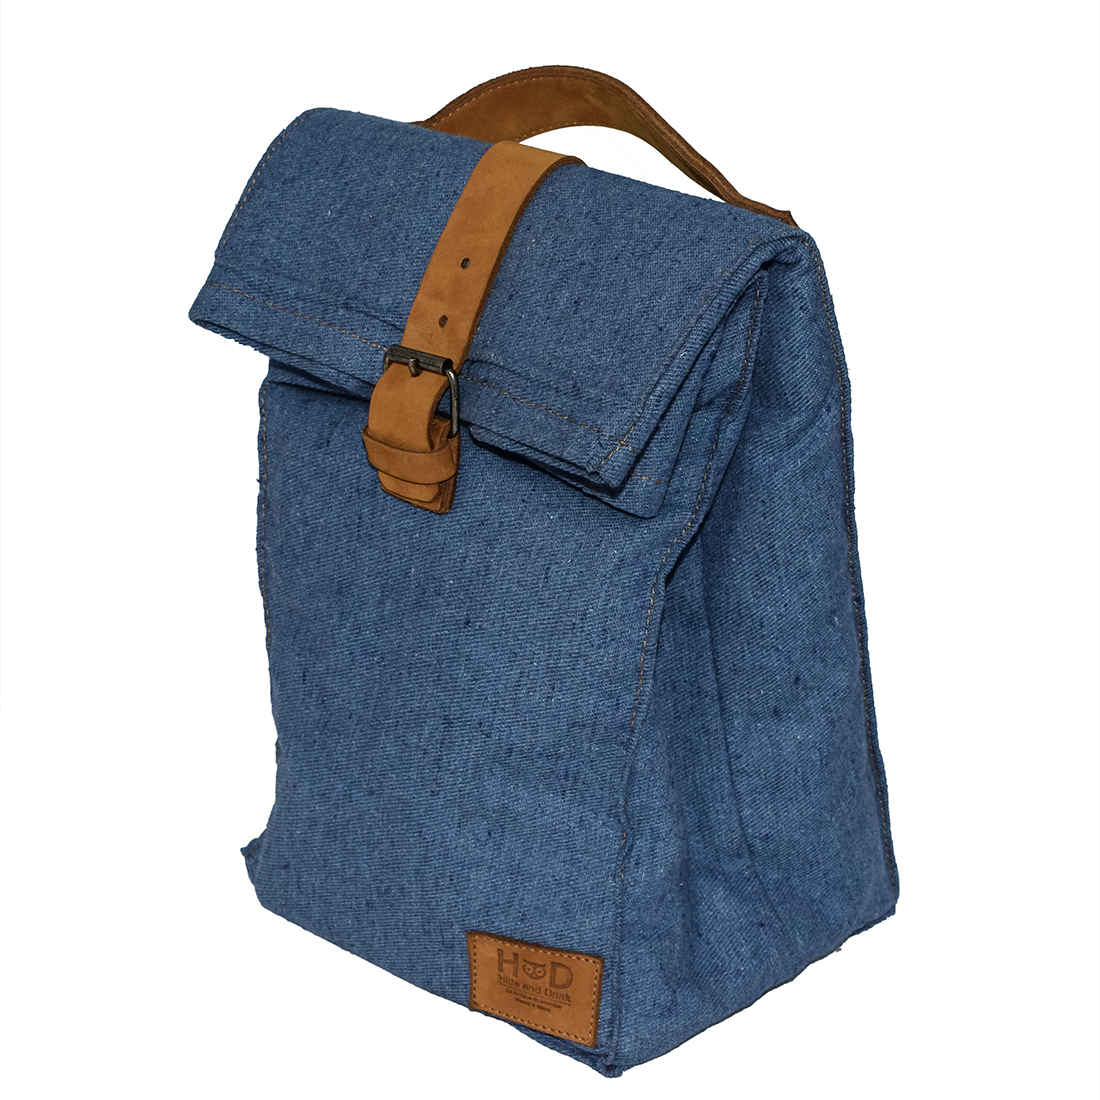 ddc91d7b2a029 Waxed Canvas Reusable Lunch Bag with Grip - Hide   Drink